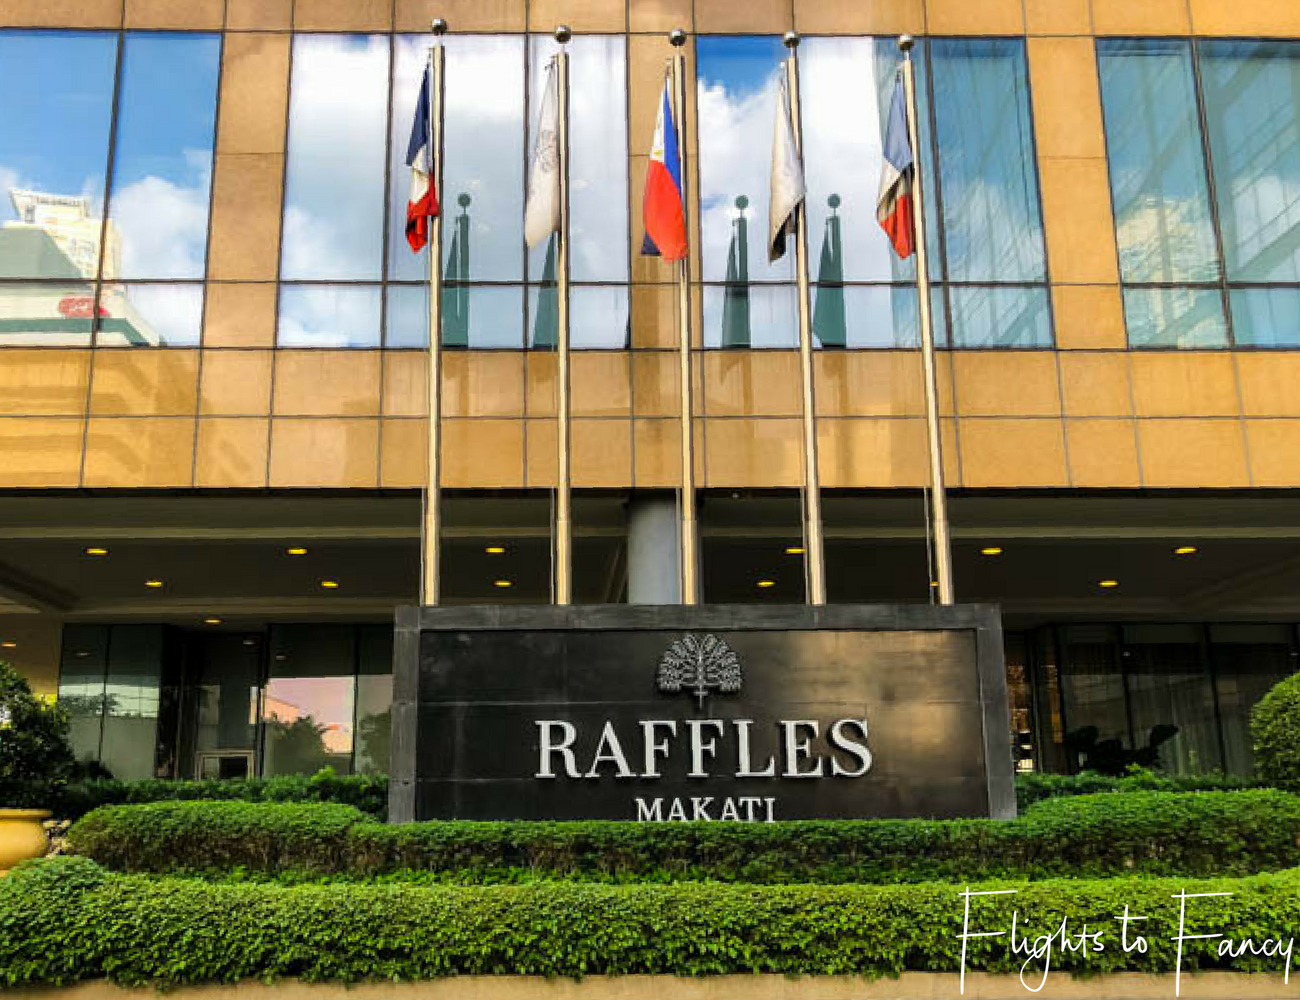 Flights To Fancy at Raffles Manila - There are always flags at the entrance of 5 star hotels in Makati